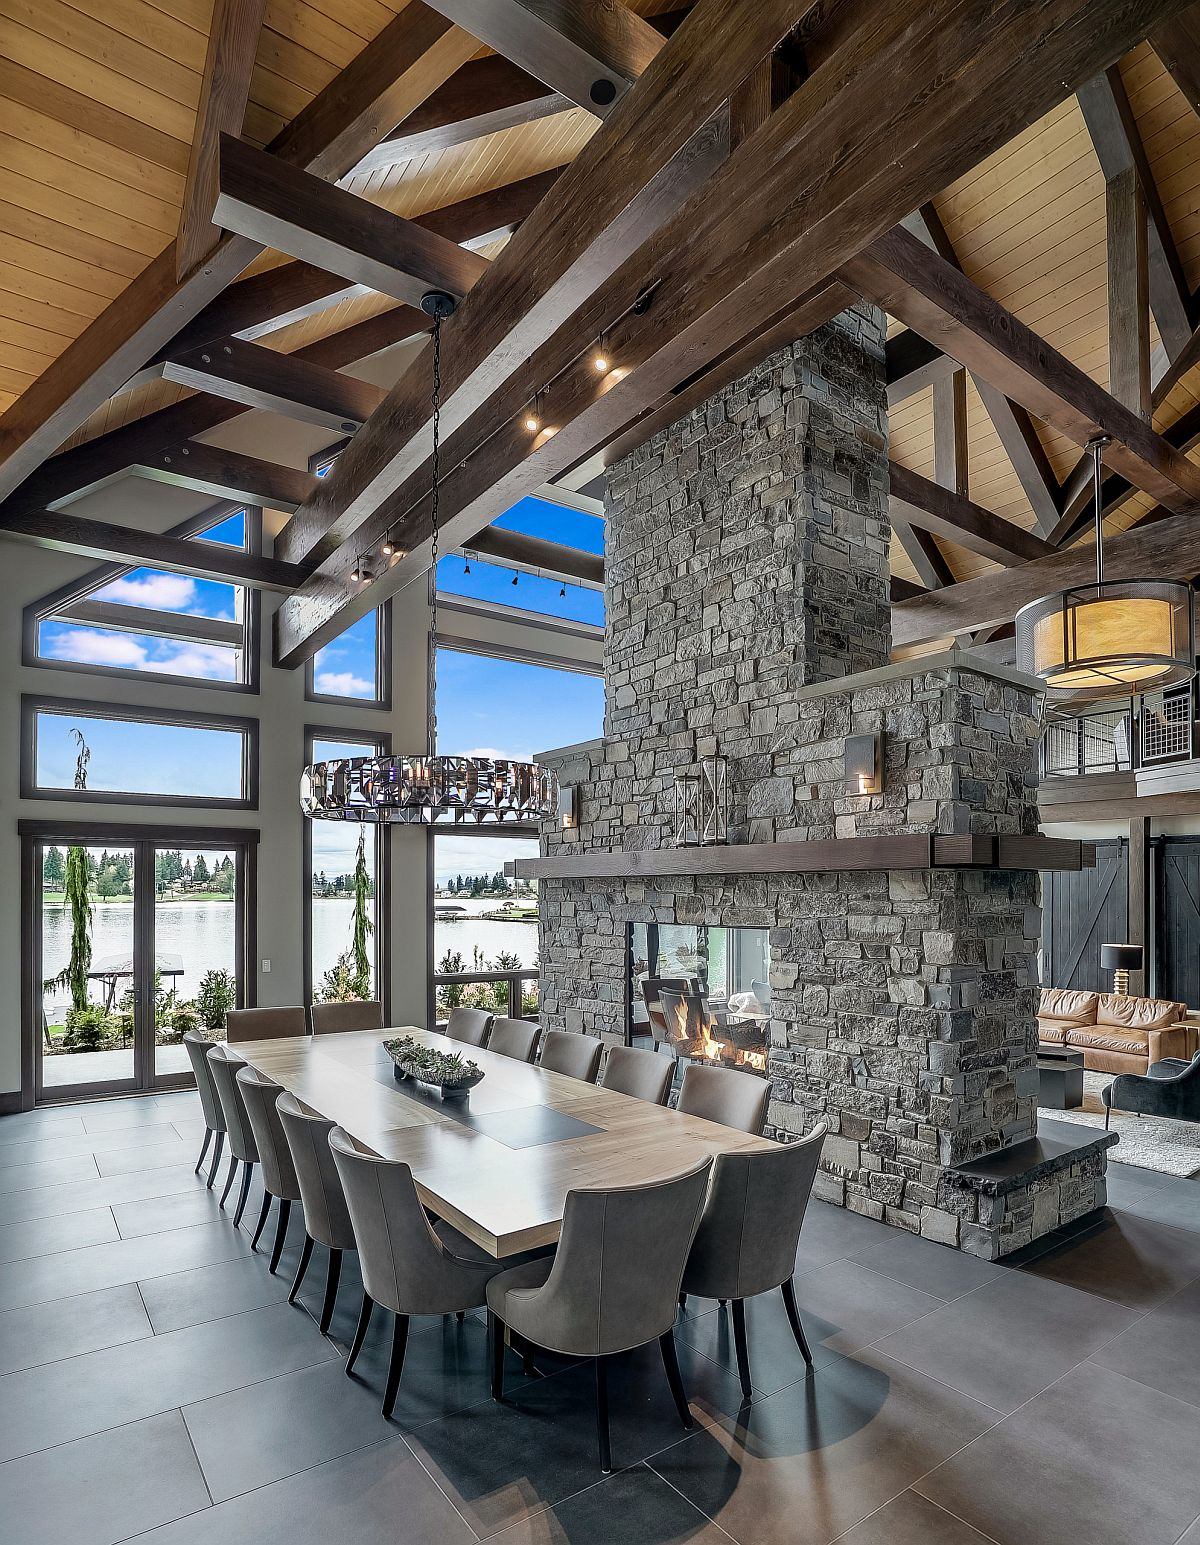 Breathtaking two-sided fireplace in stone for the rustic interior